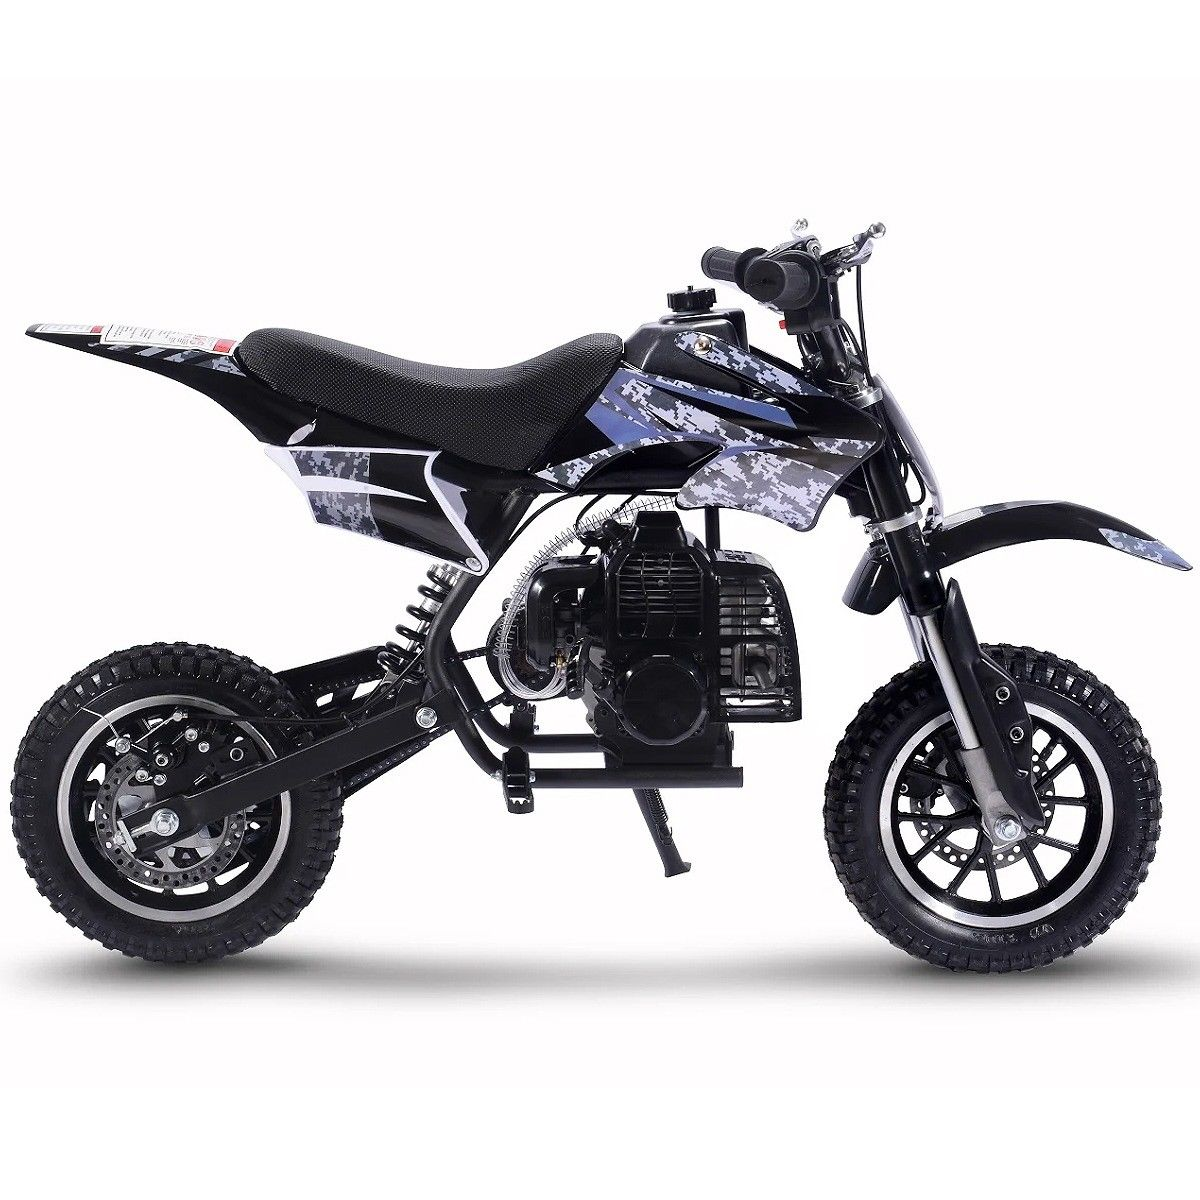 49cc-2-Stroke-Gas-Motorized-Mini-Dirt-devil-scooter-Bike-Pocket-Bike-Pit thumbnail 14